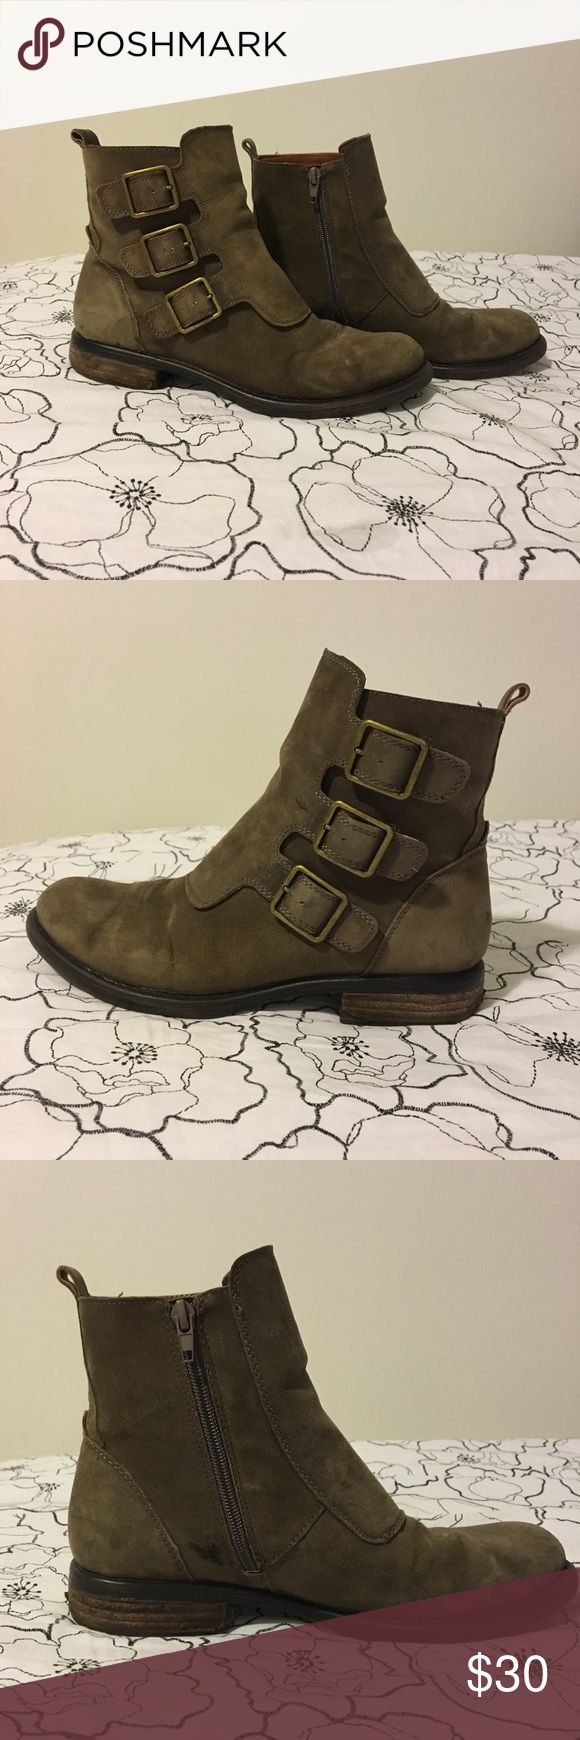 Size 8 Lucky Brand Booties Lucky Brand Suede Booties  Size 8  Great boots to dress up or down. They stay dry in the snow and rain. Super comfortable and great for all day walking. Lucky Brand Shoes Ankle Boots & Booties